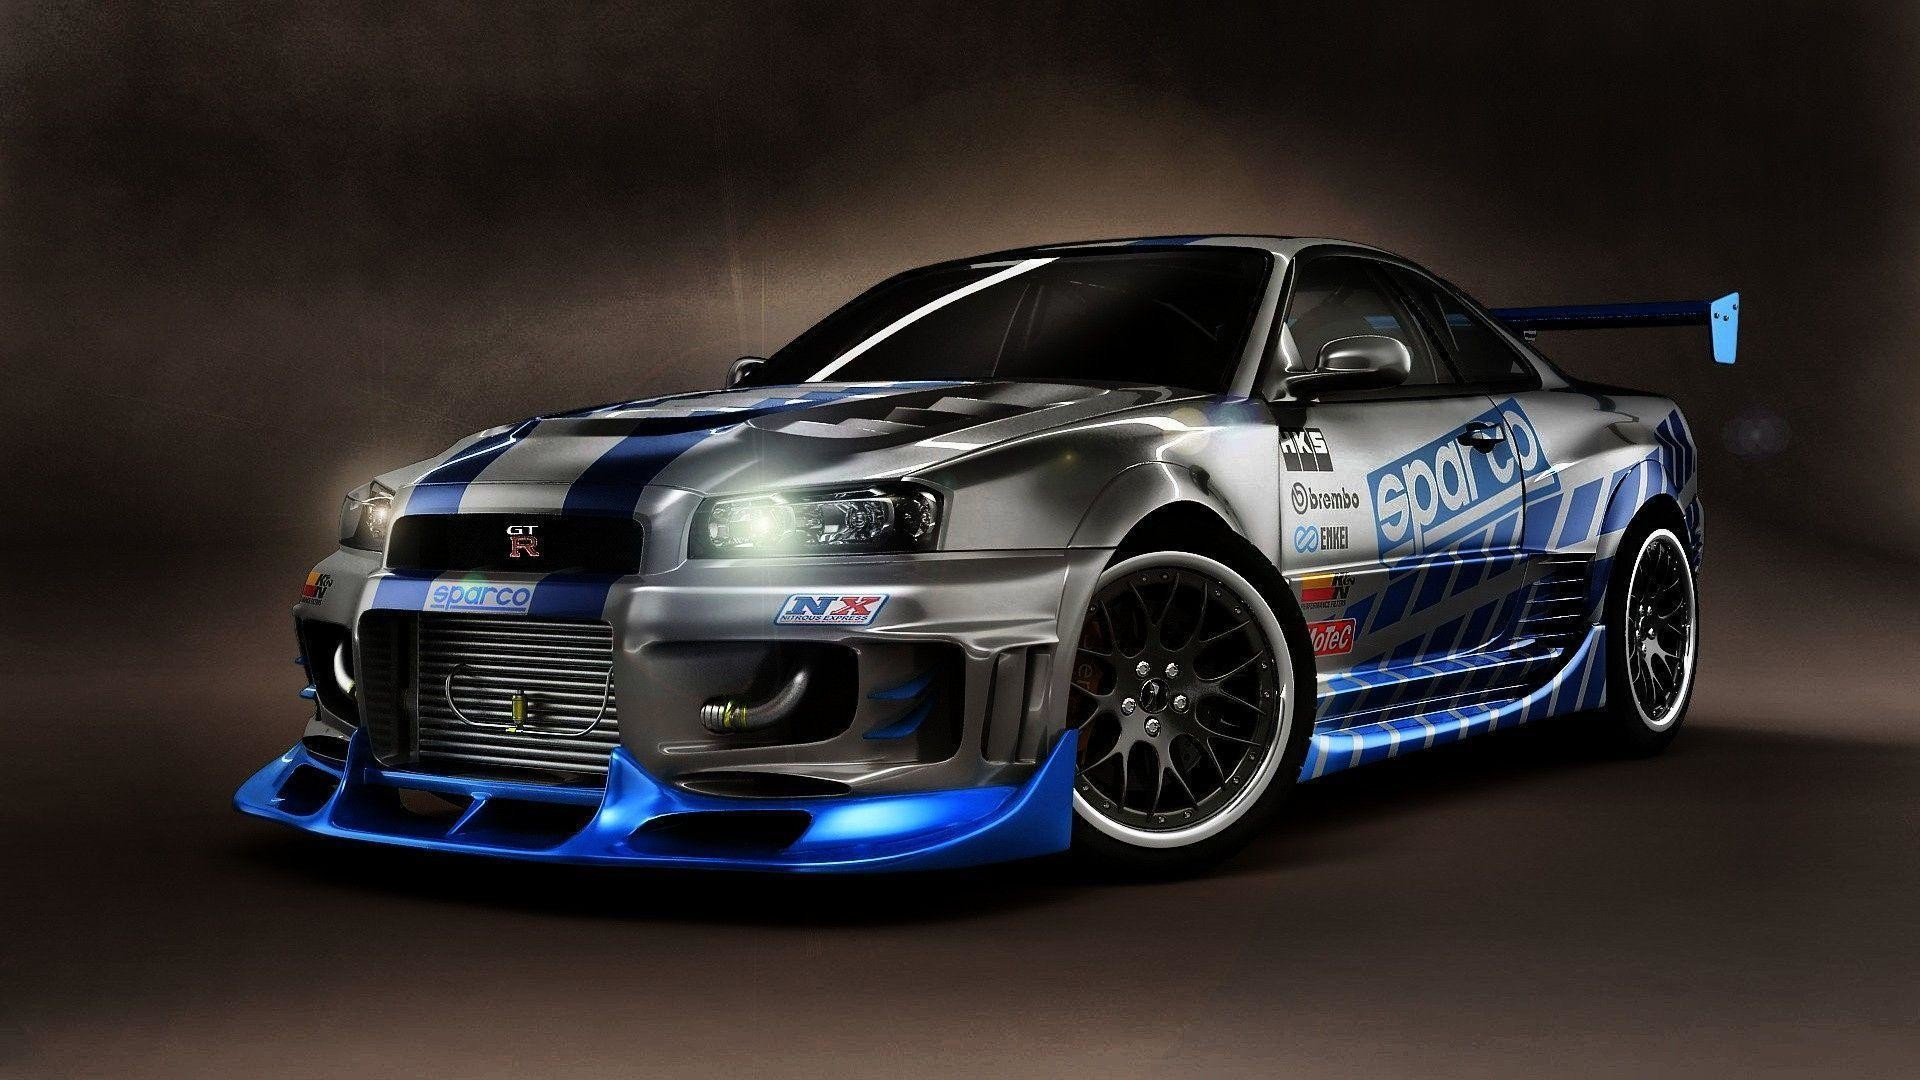 nissan skyline gtr r34 wallpaper 75 images. Black Bedroom Furniture Sets. Home Design Ideas